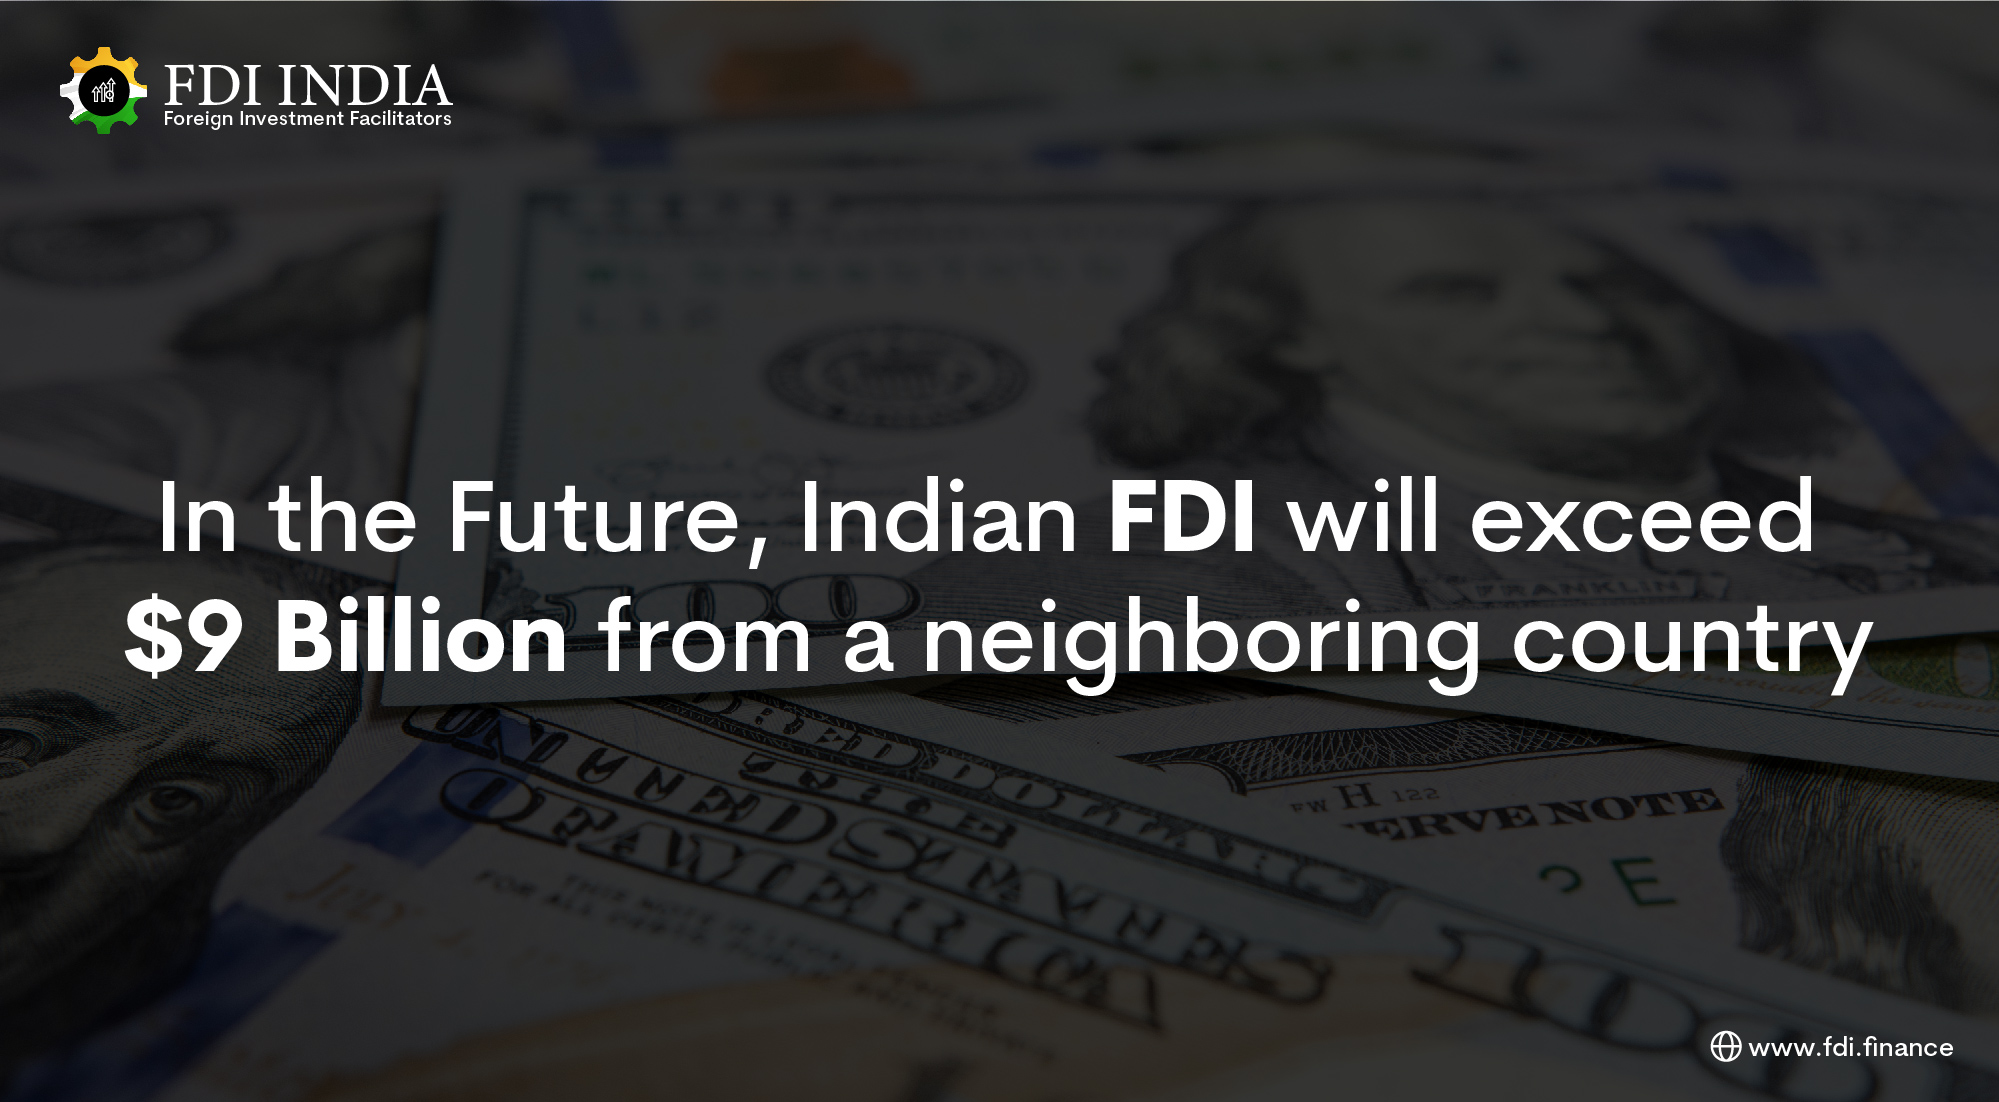 In the Future, Indian FDI Will Exceed $9 Billion From a Neighboring Country